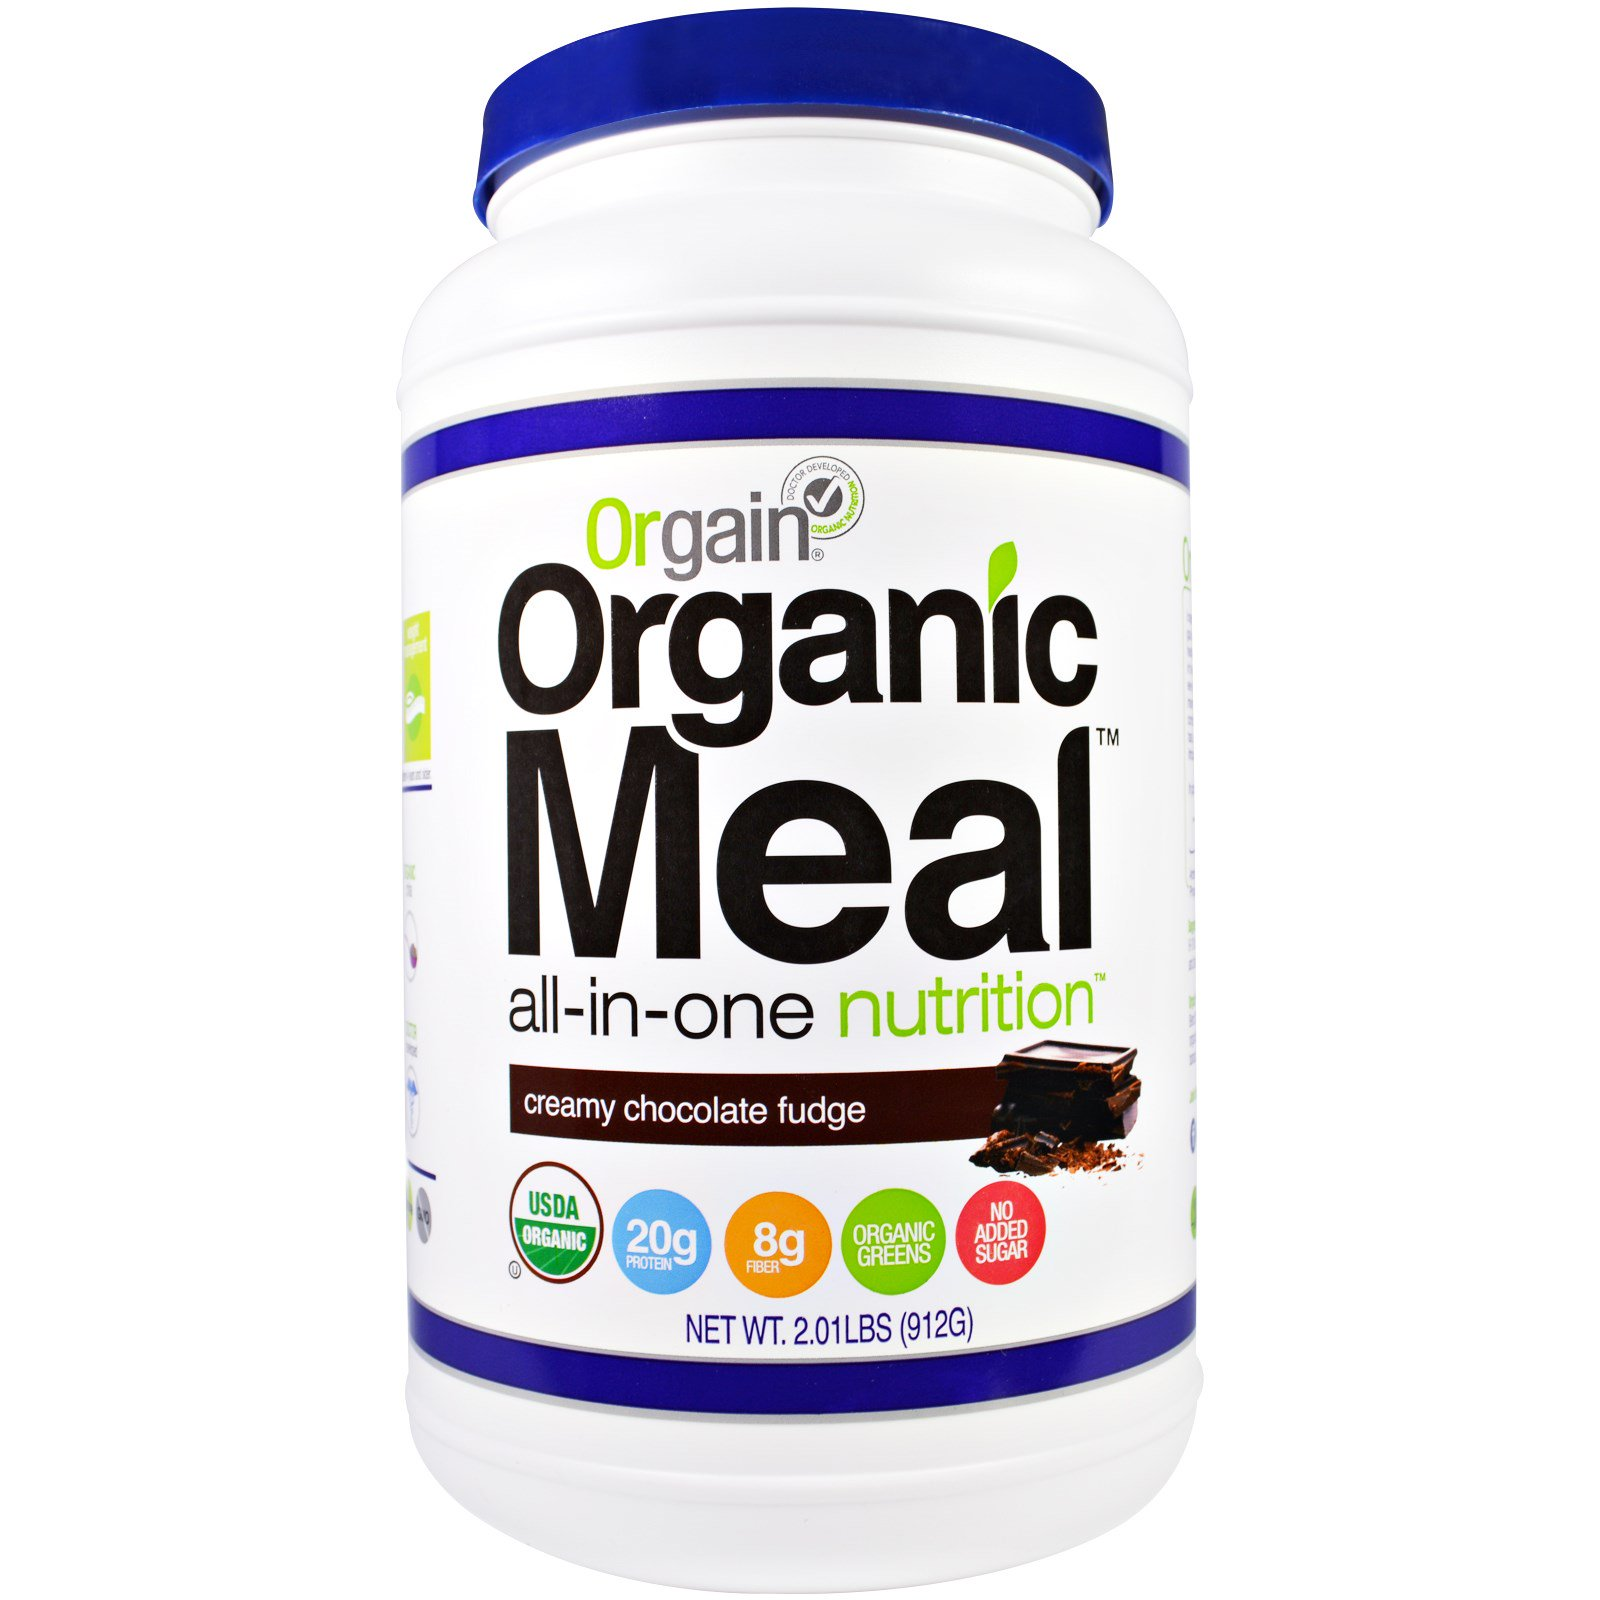 Orgain, Organic Meal, All-In-One Nutrition, Creamy Chocolate Fudge, 2.01 lbs(pack of 1)